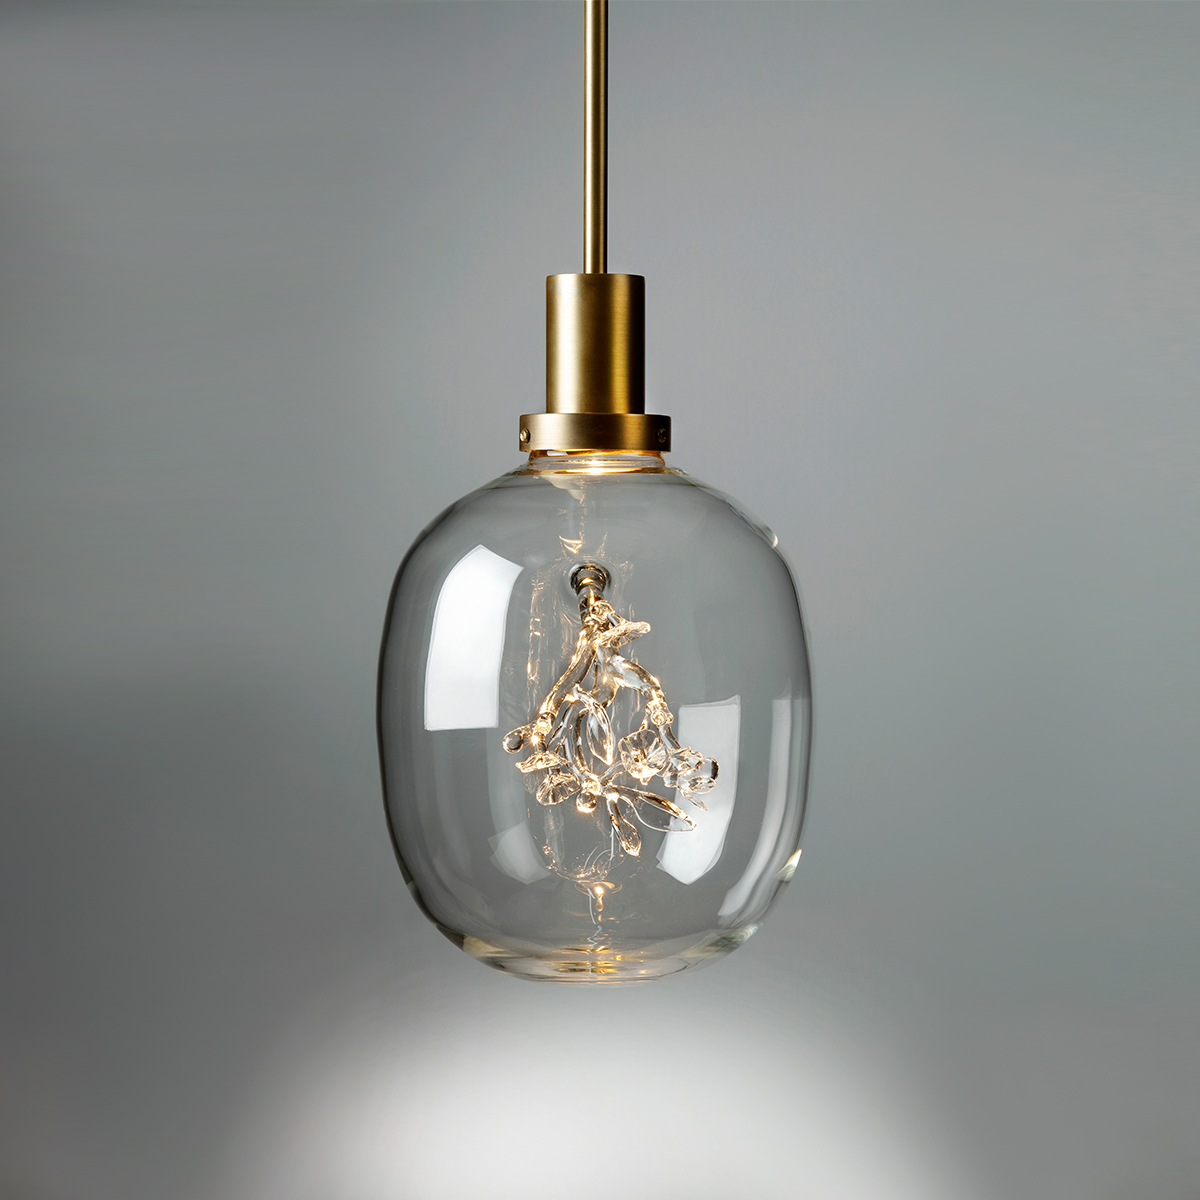 Hand-blown glass and brass light design